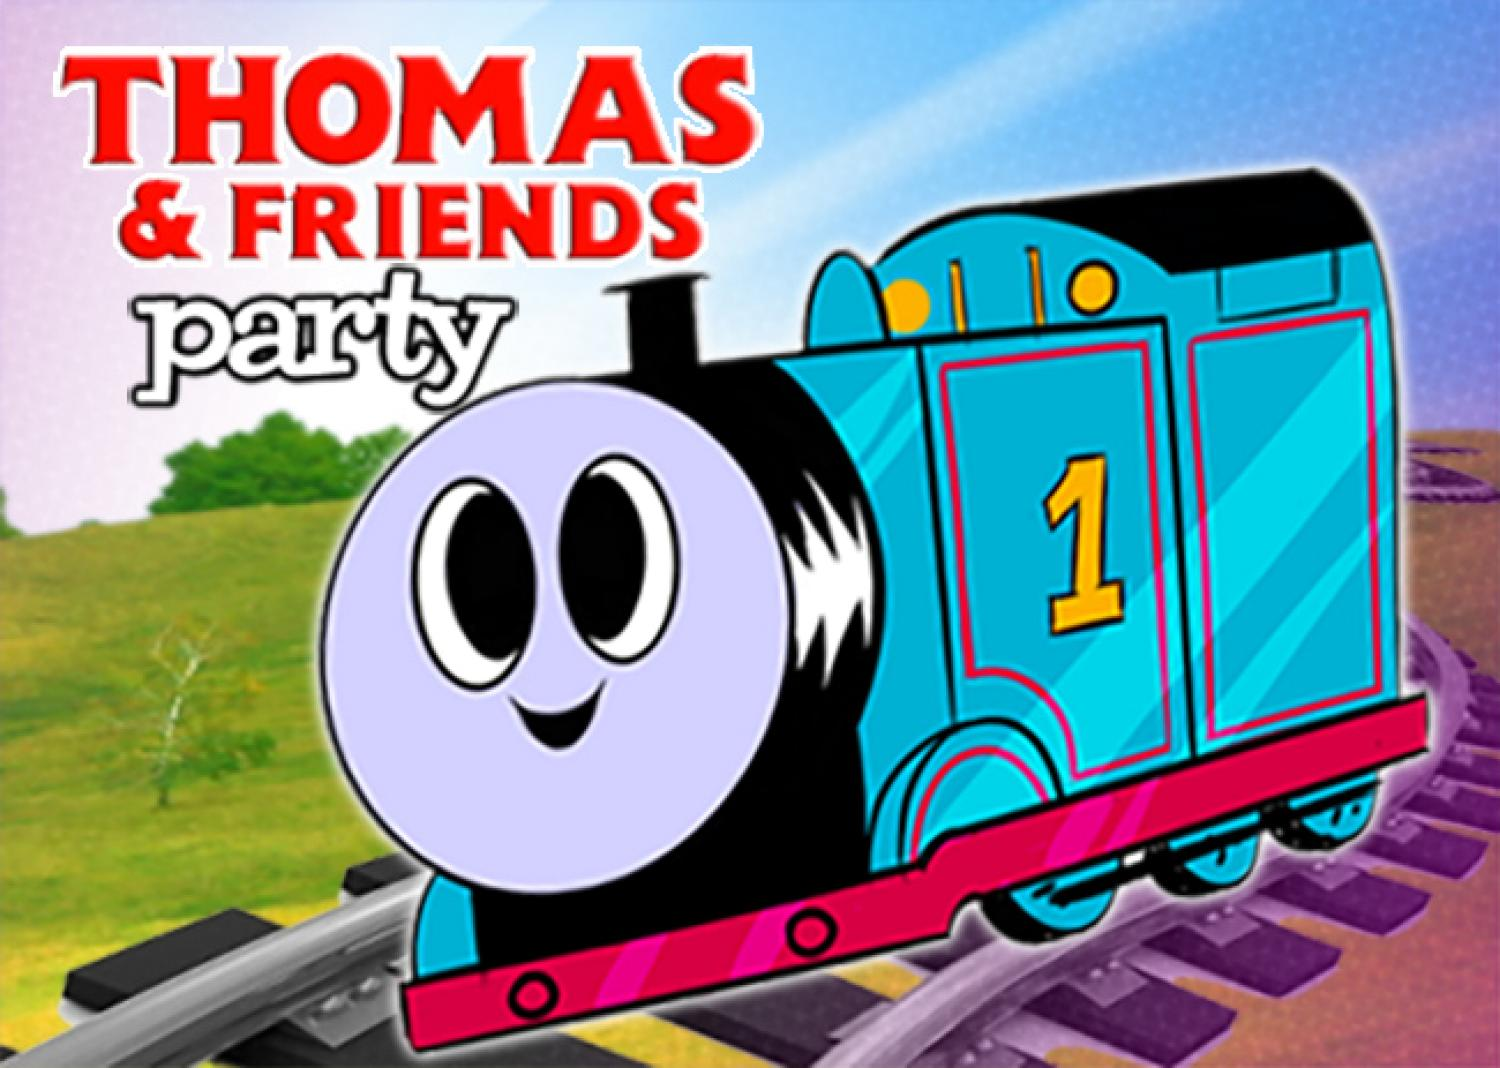 5 Cool Tips For Throwing a Thomas & Friends Party